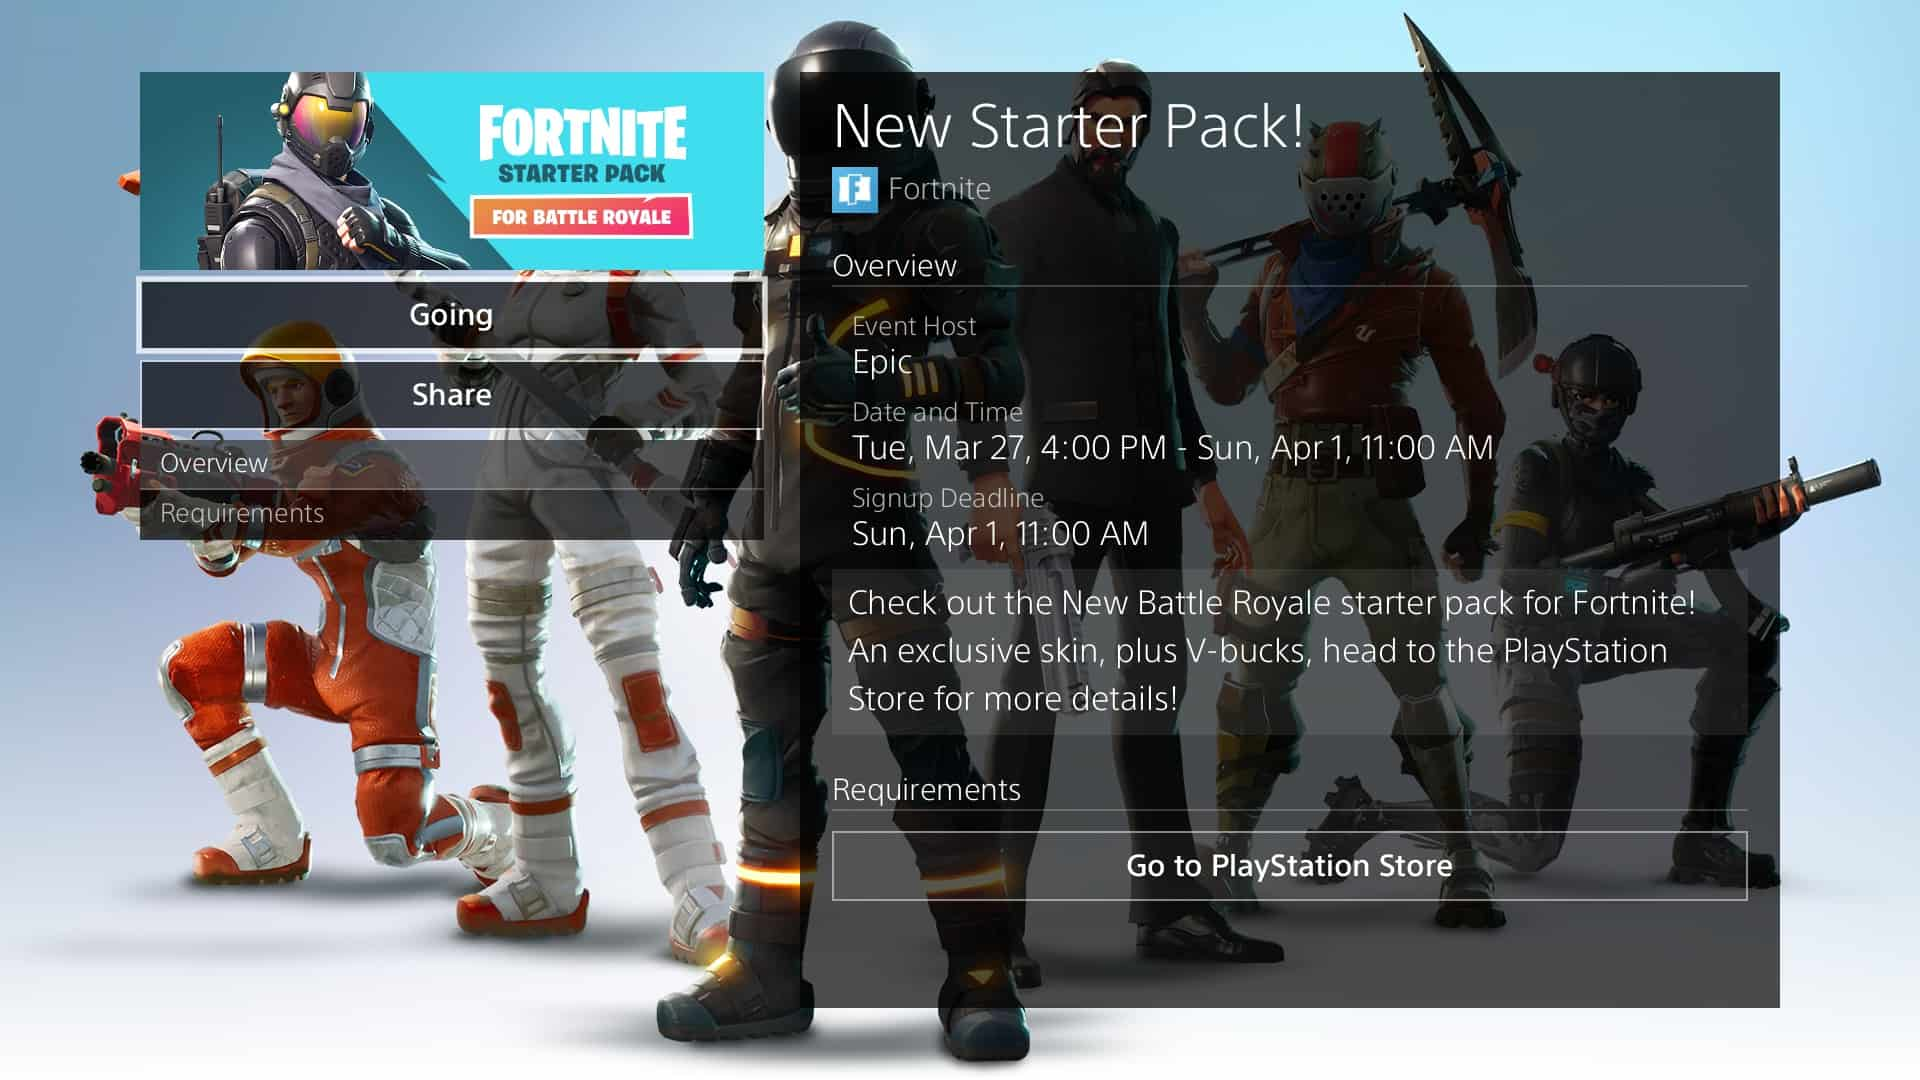 Fortnite Starter Pack Release Date